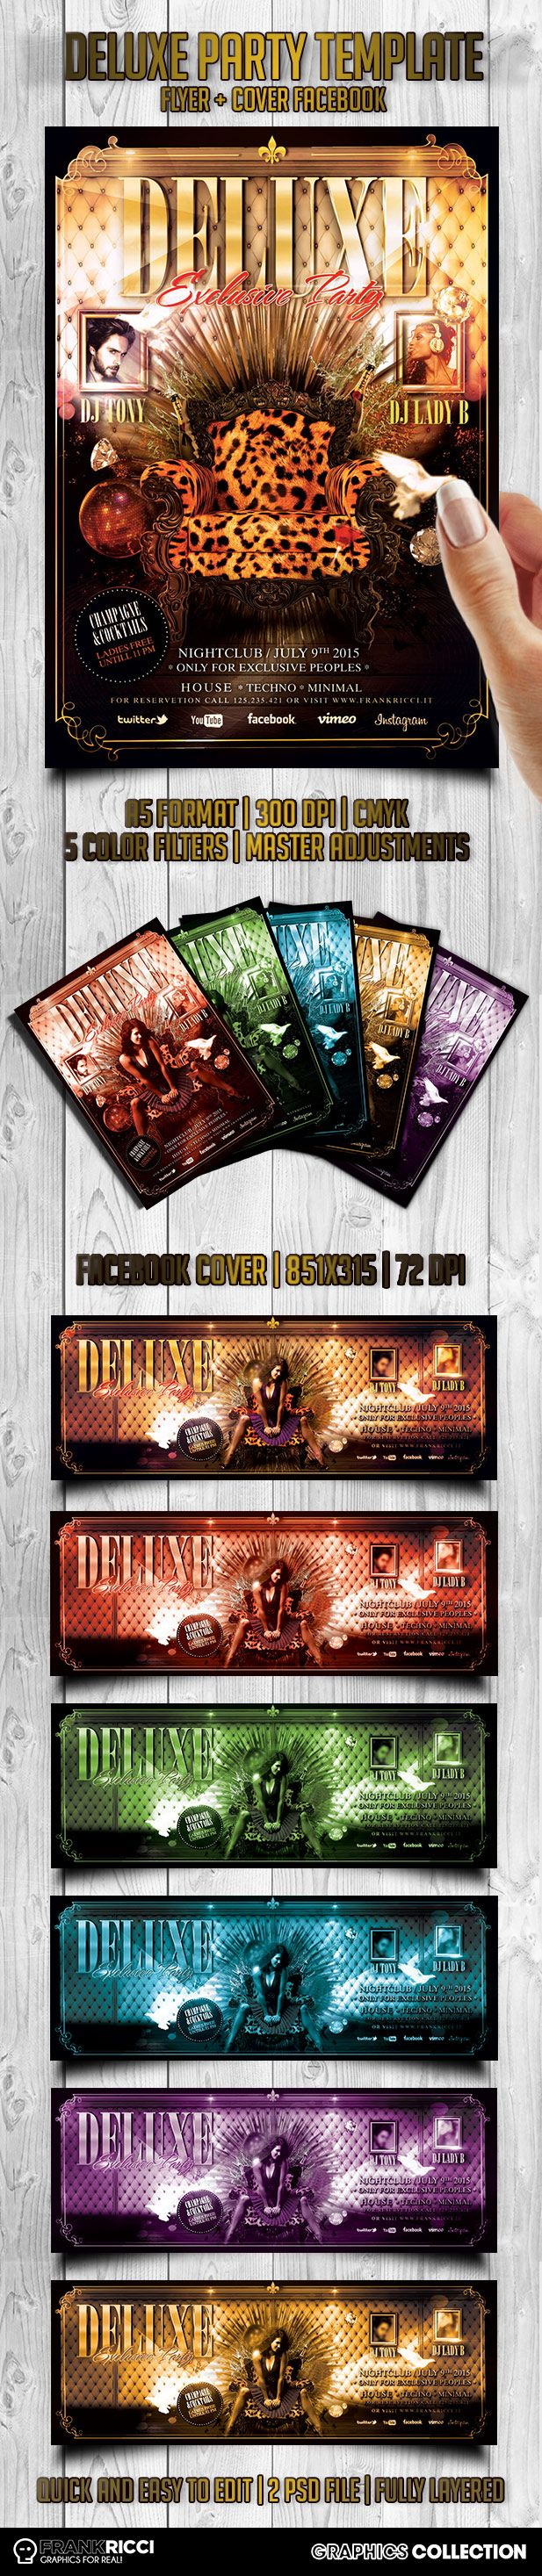 Deluxe 01 New PSD Template avalaible on http://frankricci.it/deluxe-01/